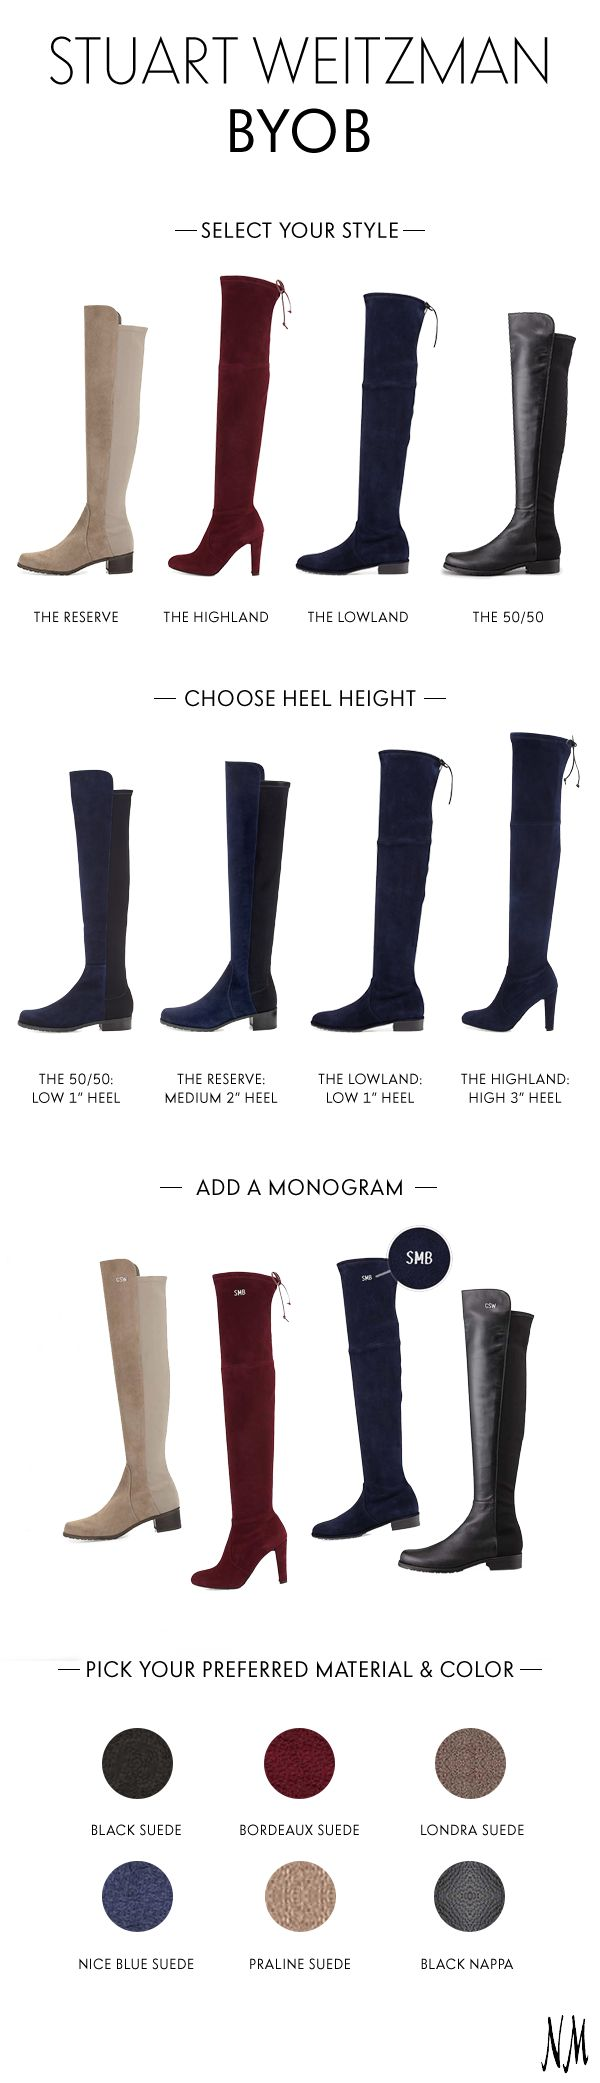 Exclusively at Neiman Marcus, BYOB: Build Your Own Boots with Stuart Weitzman! Choose between four styles, select heel height, material and color, and add an optional monogram for a truly personal touch.